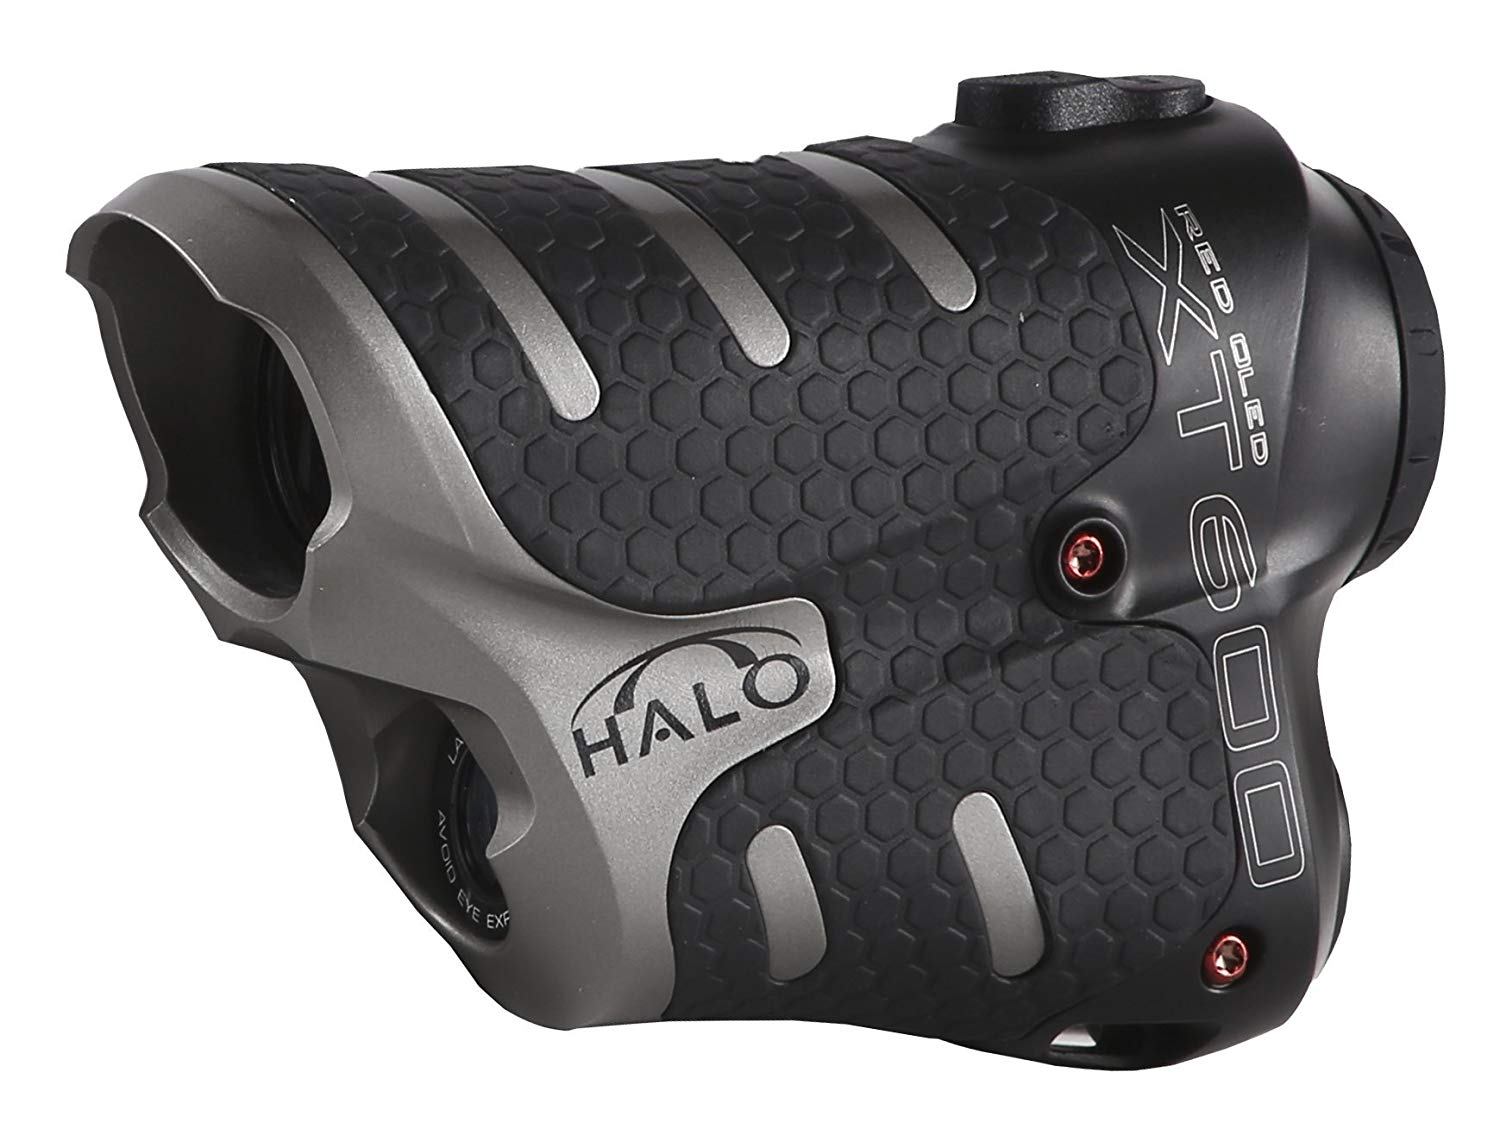 Wild Game Innovations 600 Range Finder